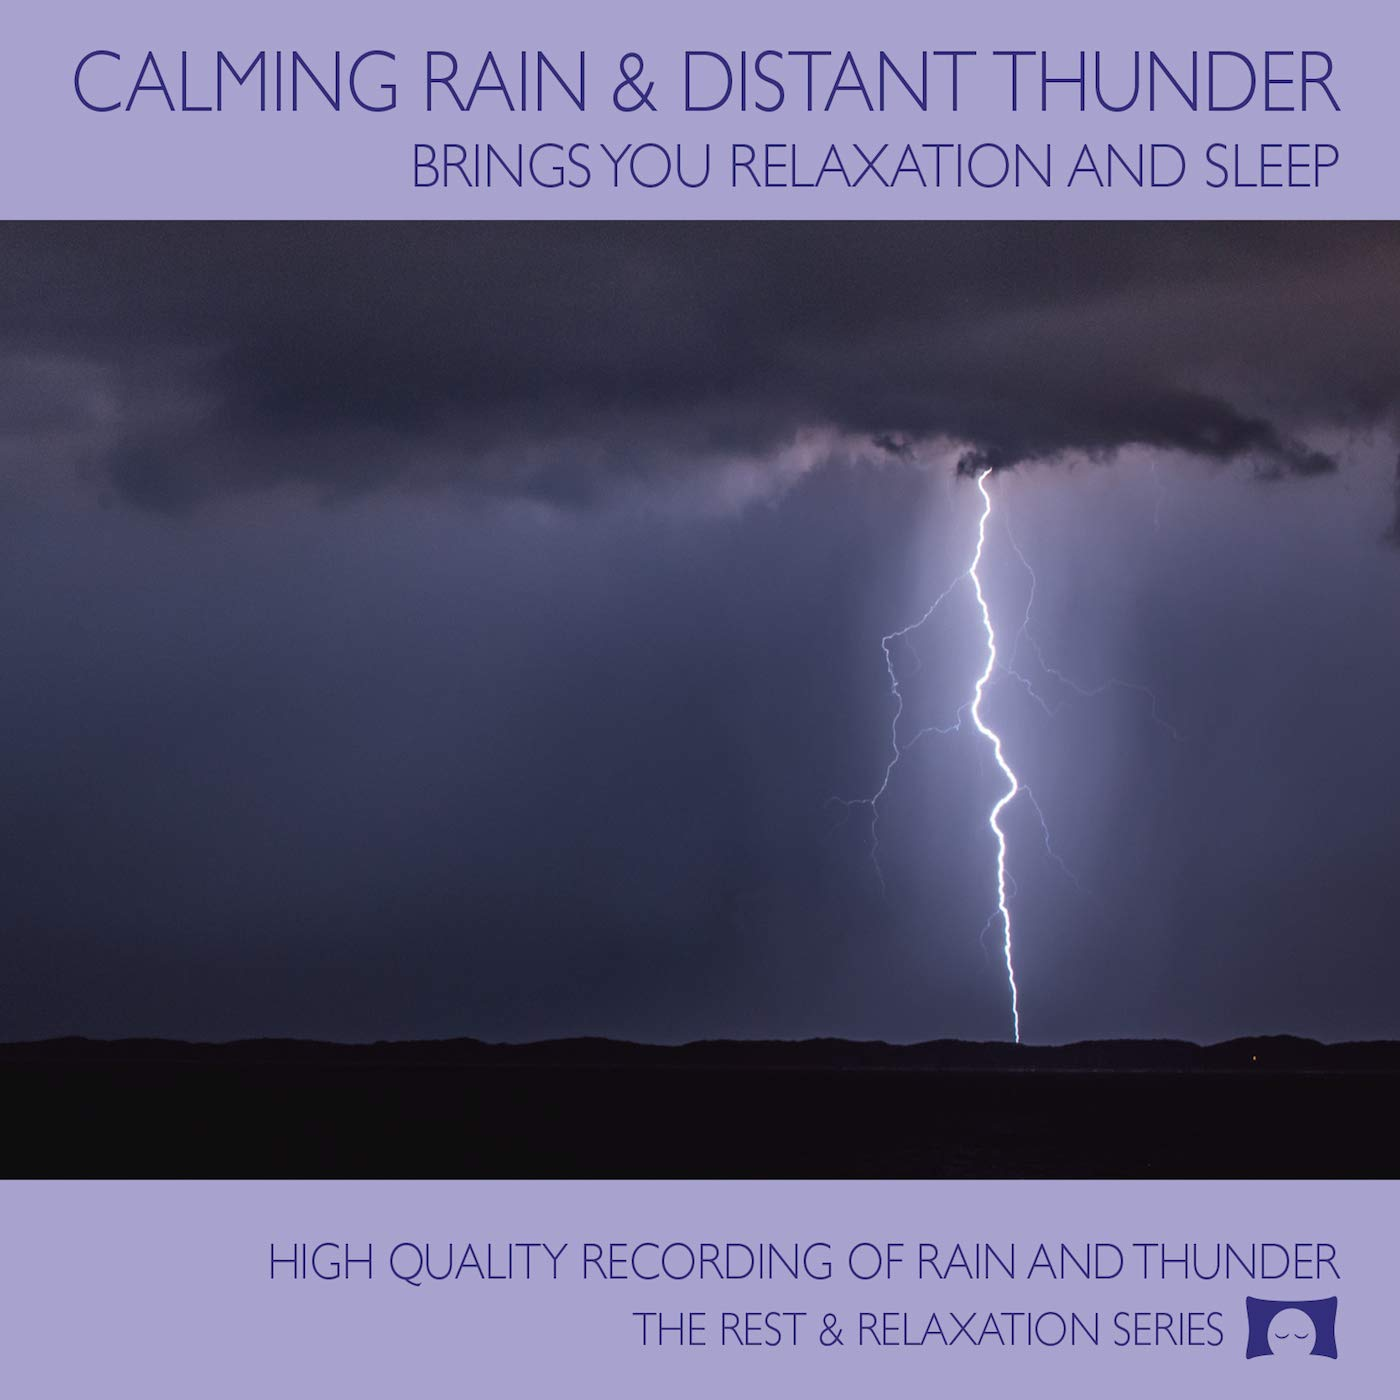 Calming Rain and Distant Thunder - Thunderstorm Nature Sounds Recording - for Meditation, Relaxation and Sleep - Nature's Perfect White Noise -<span class=